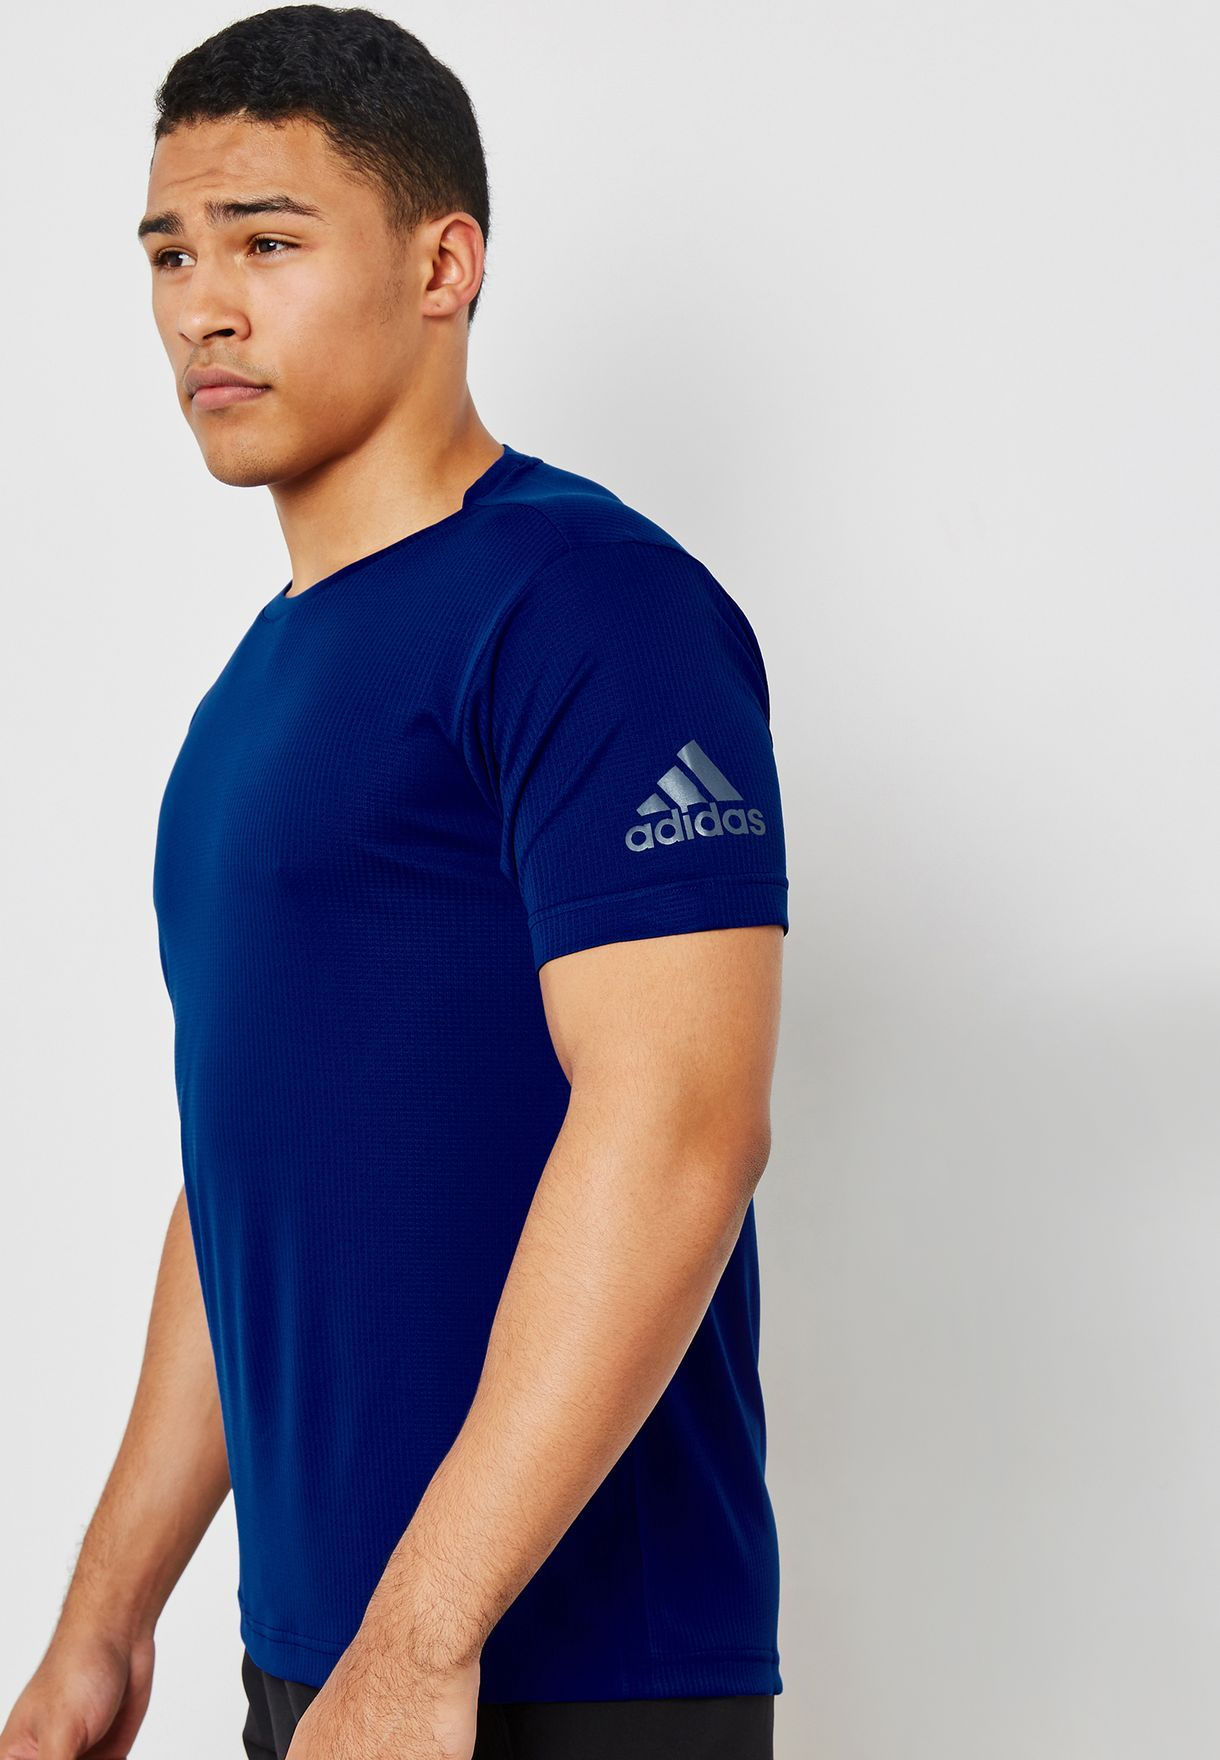 Buy Adidas Blue Freelift Climachill T Shirt For Men In Mena Worldwide Cx0222